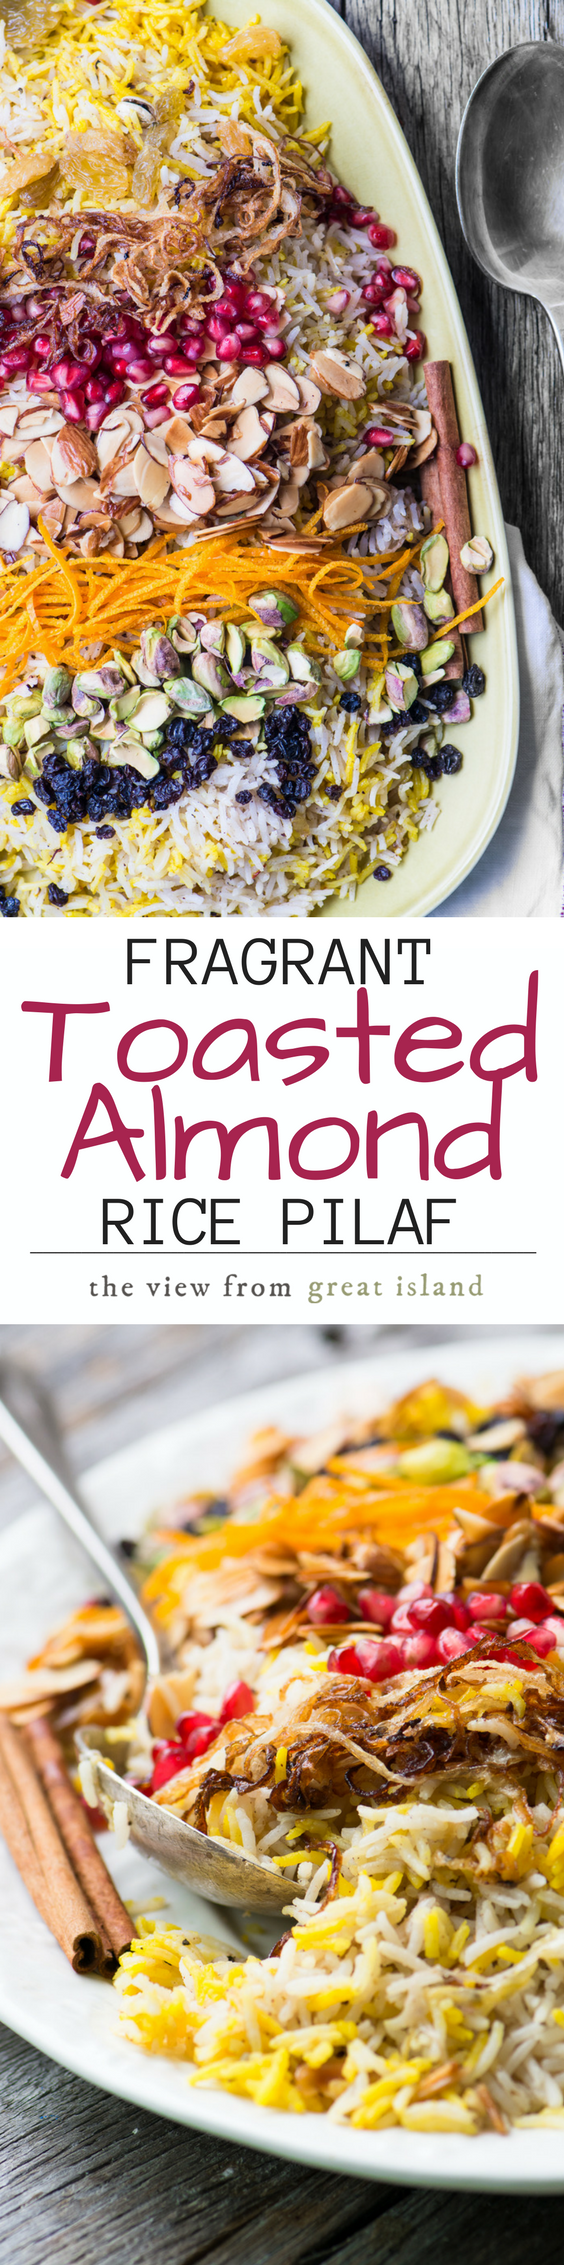 My Fragrant Toasted Almond Rice Pilaf is meant for joyful gatherings ~ it has roots in the ancient cuisines of Persia and the Middle East, but it's vegan and gluten free, so it'll please a modern crowd too! |EASTER | SIDE DISH | SPRING |